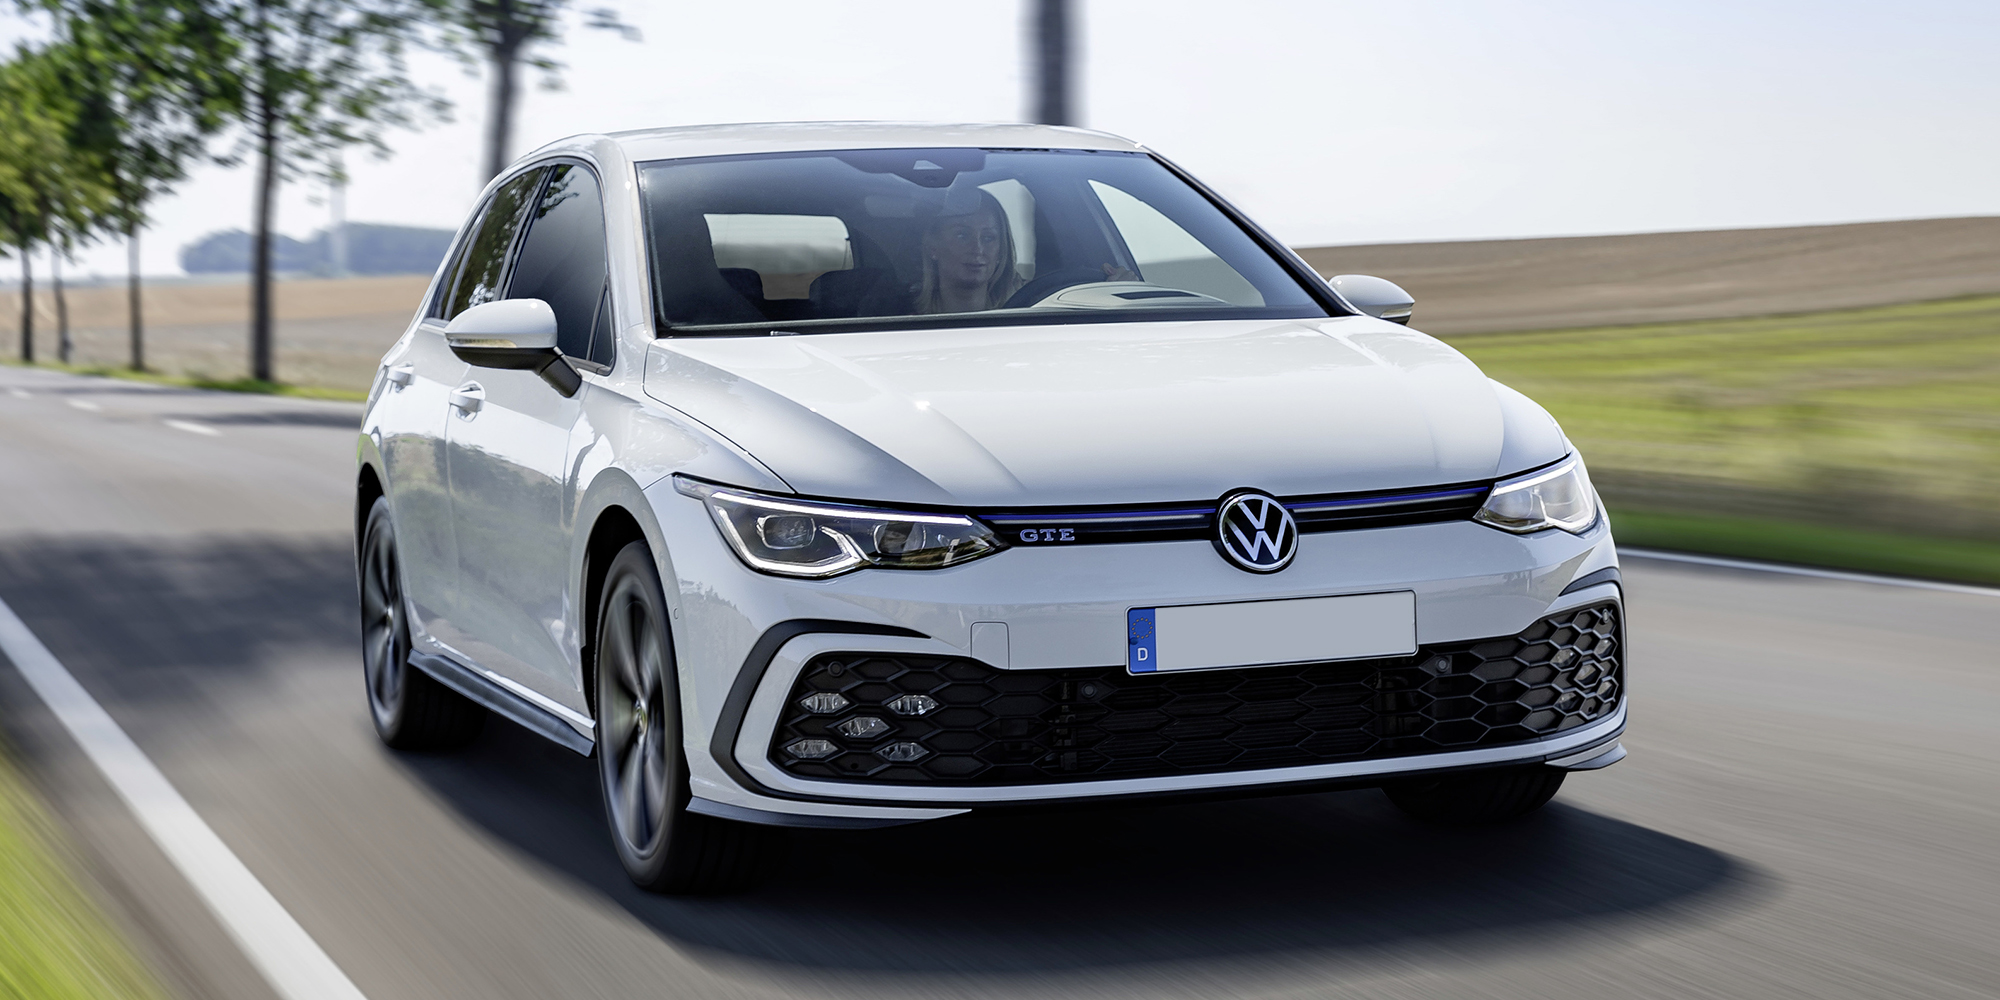 Volkswagen Golf Gte Review 2021 Carwow